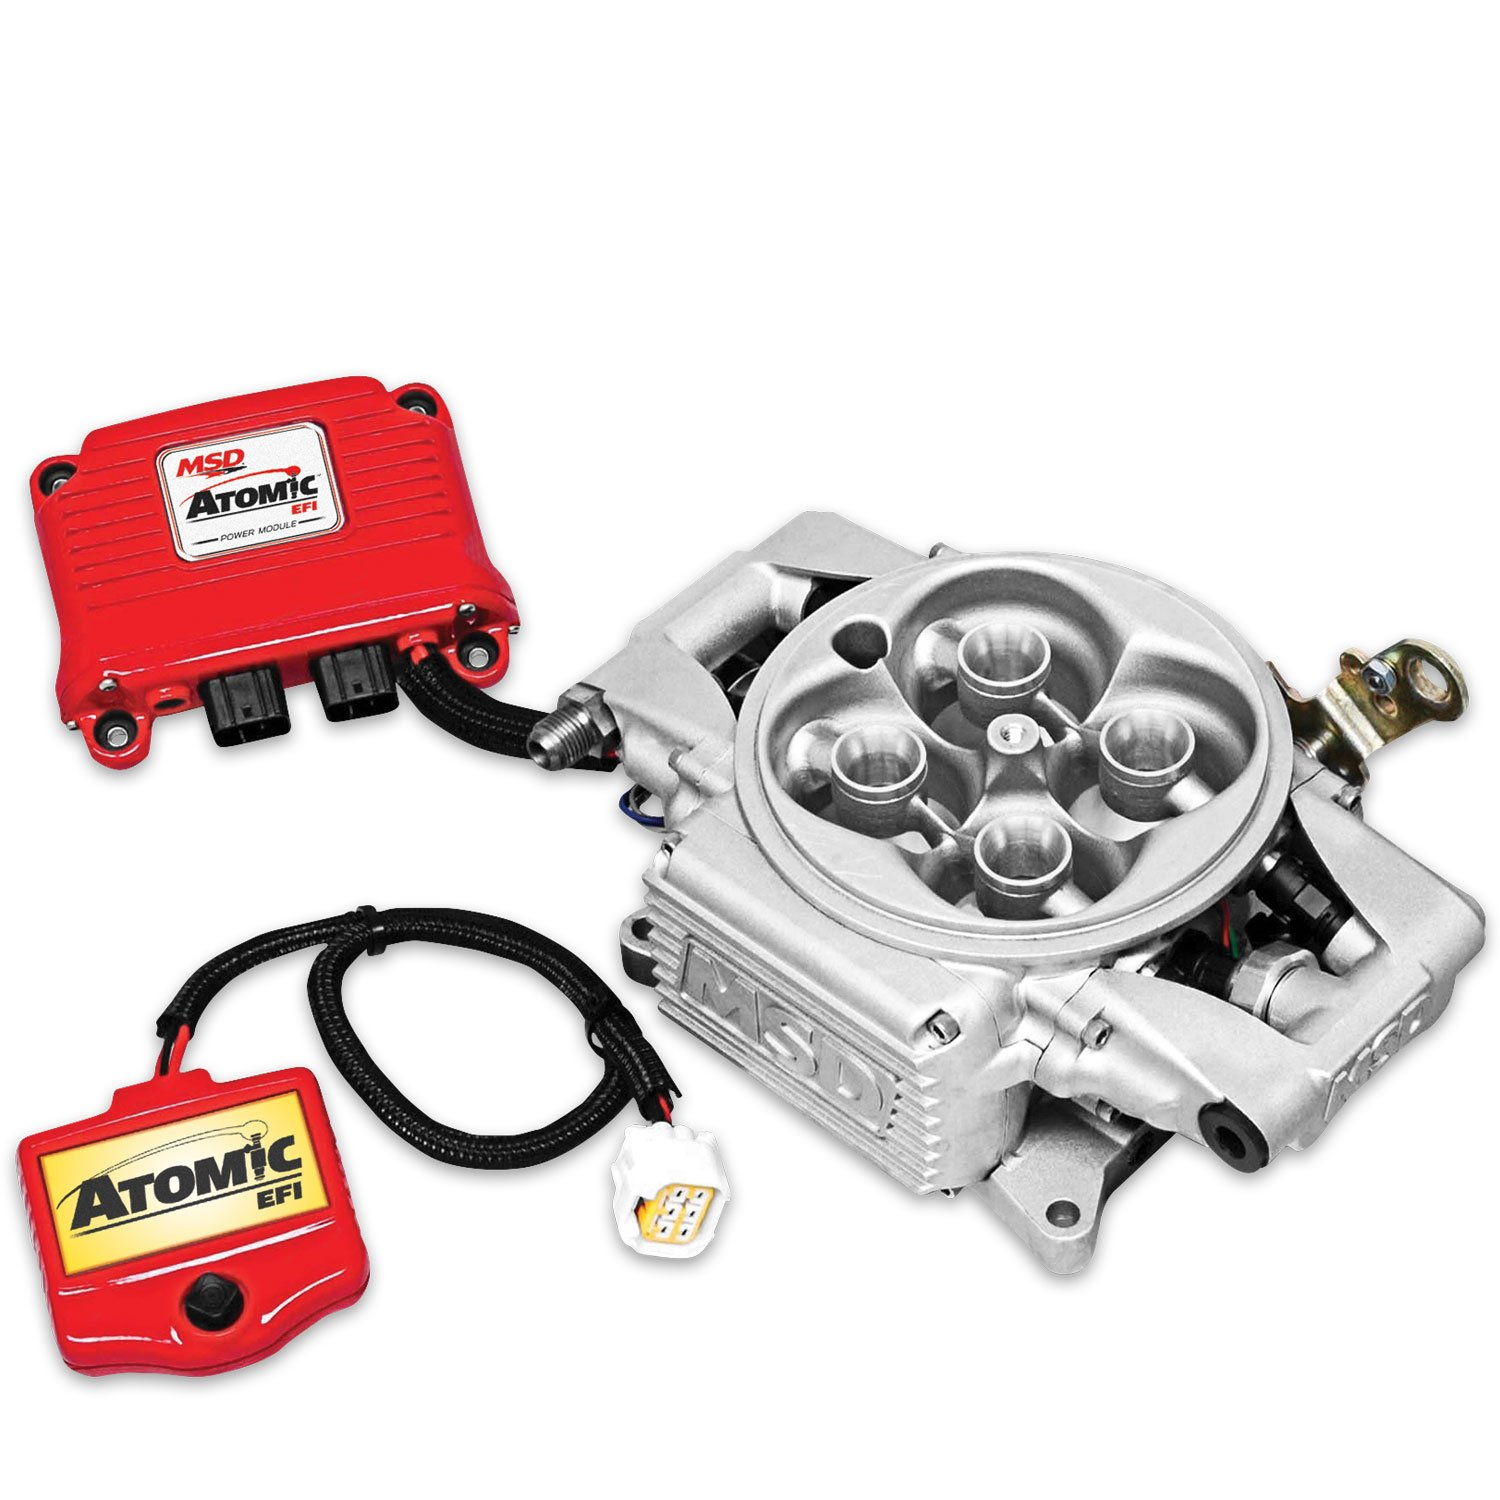 2910 - Atomic EFI Throttle Body Kit Image